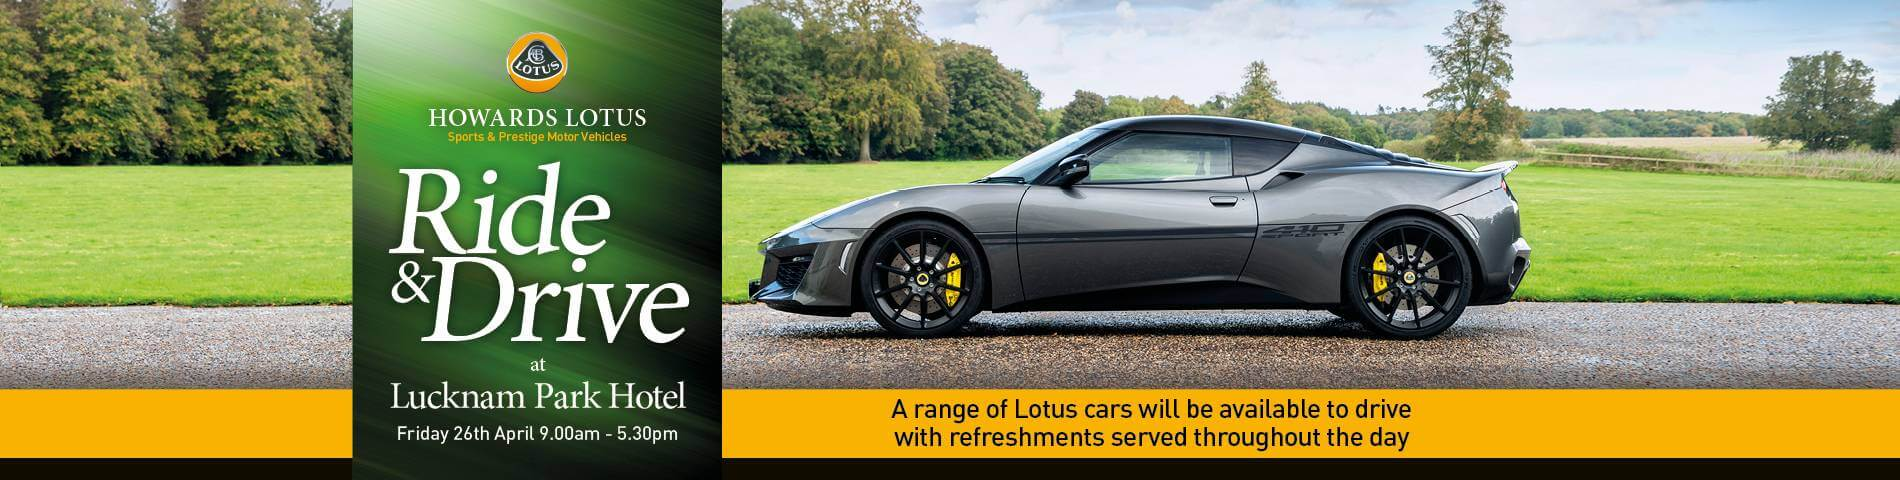 Lotus Ride & Drive Event